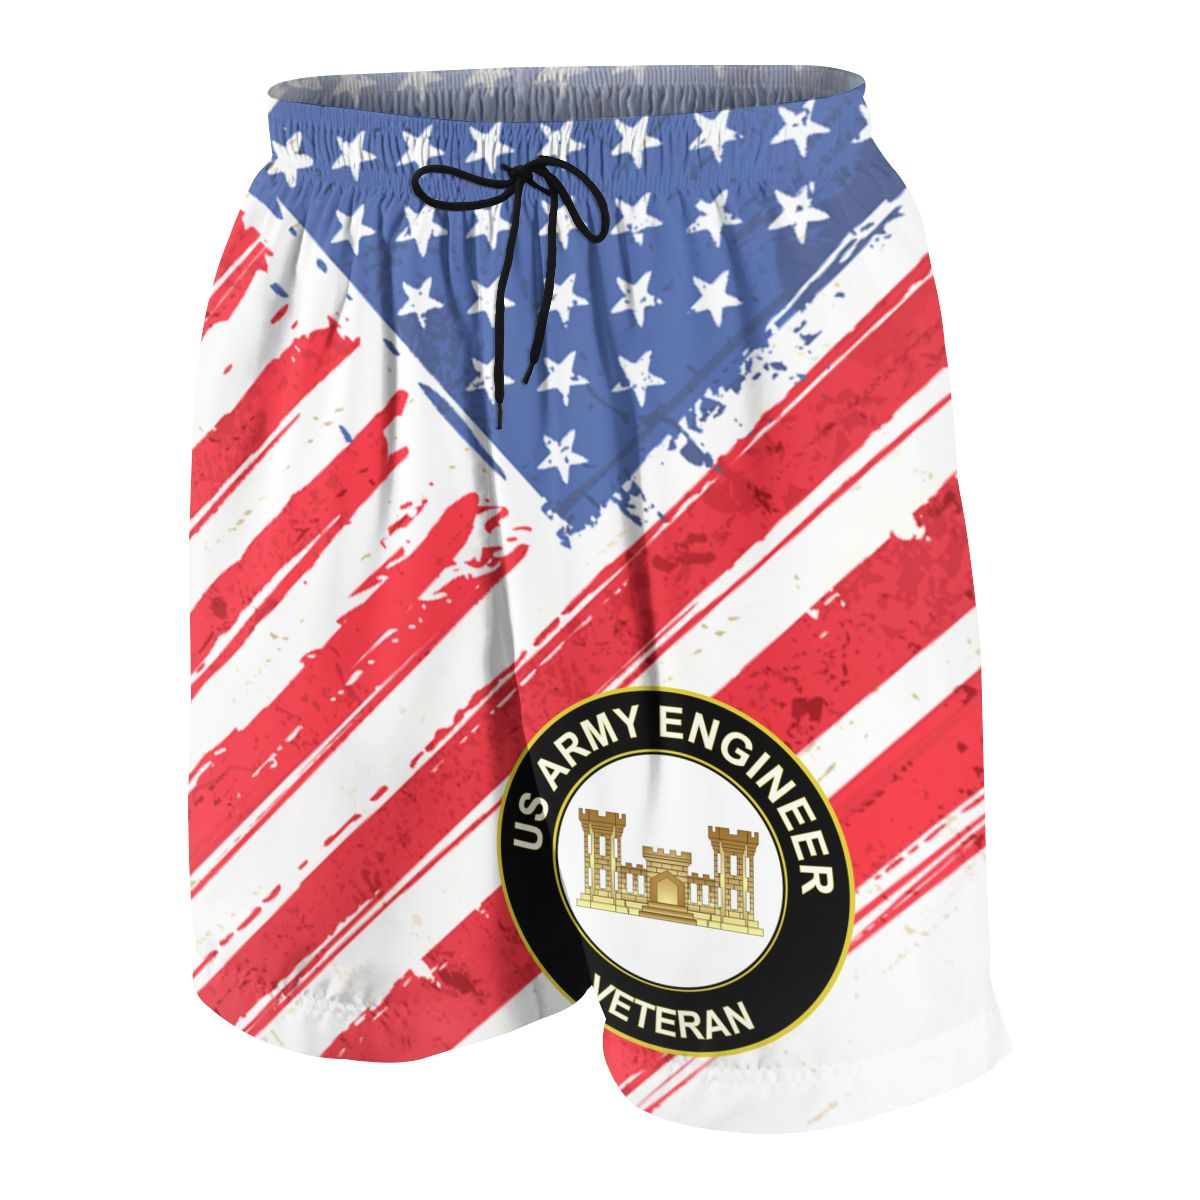 US Army Veteran Army Engineer Teenagers Comfortable Fashion Fitness Joggers Quick-dry Cool Short Sweatpants